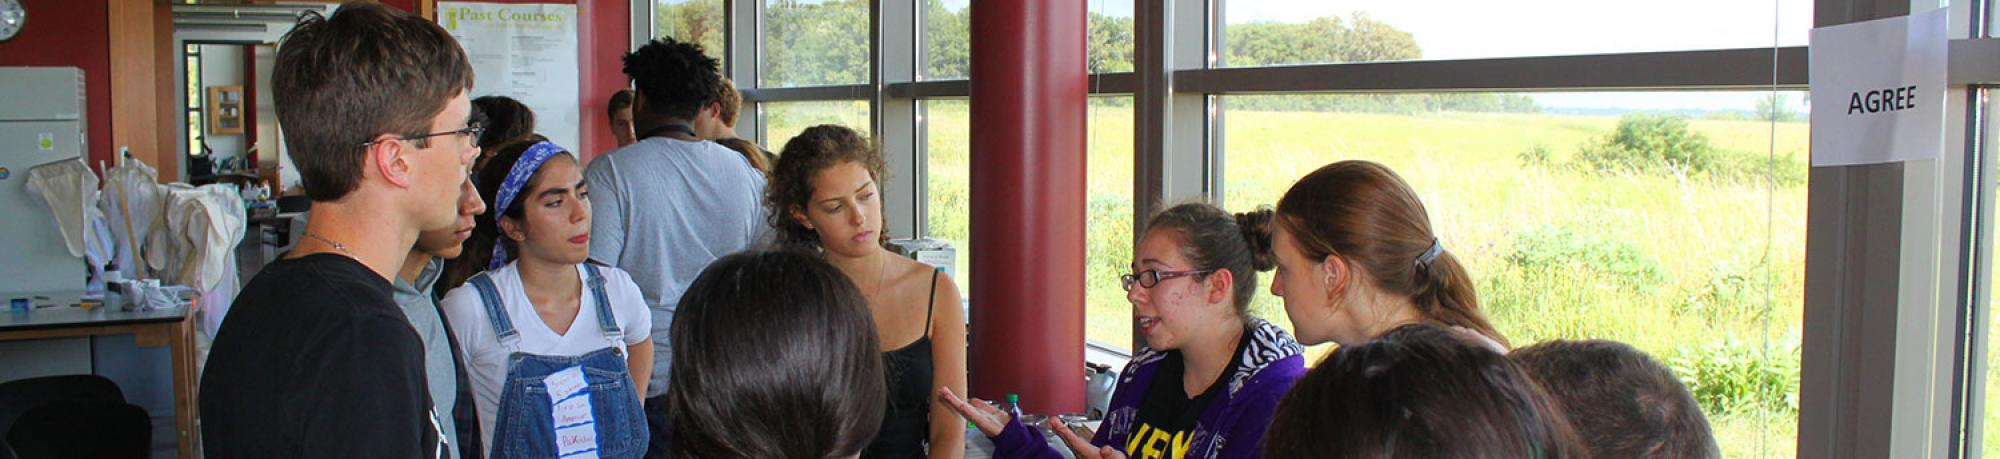 A group of students share in a talking circle. Behind them are windows toward the Iowa prairie.